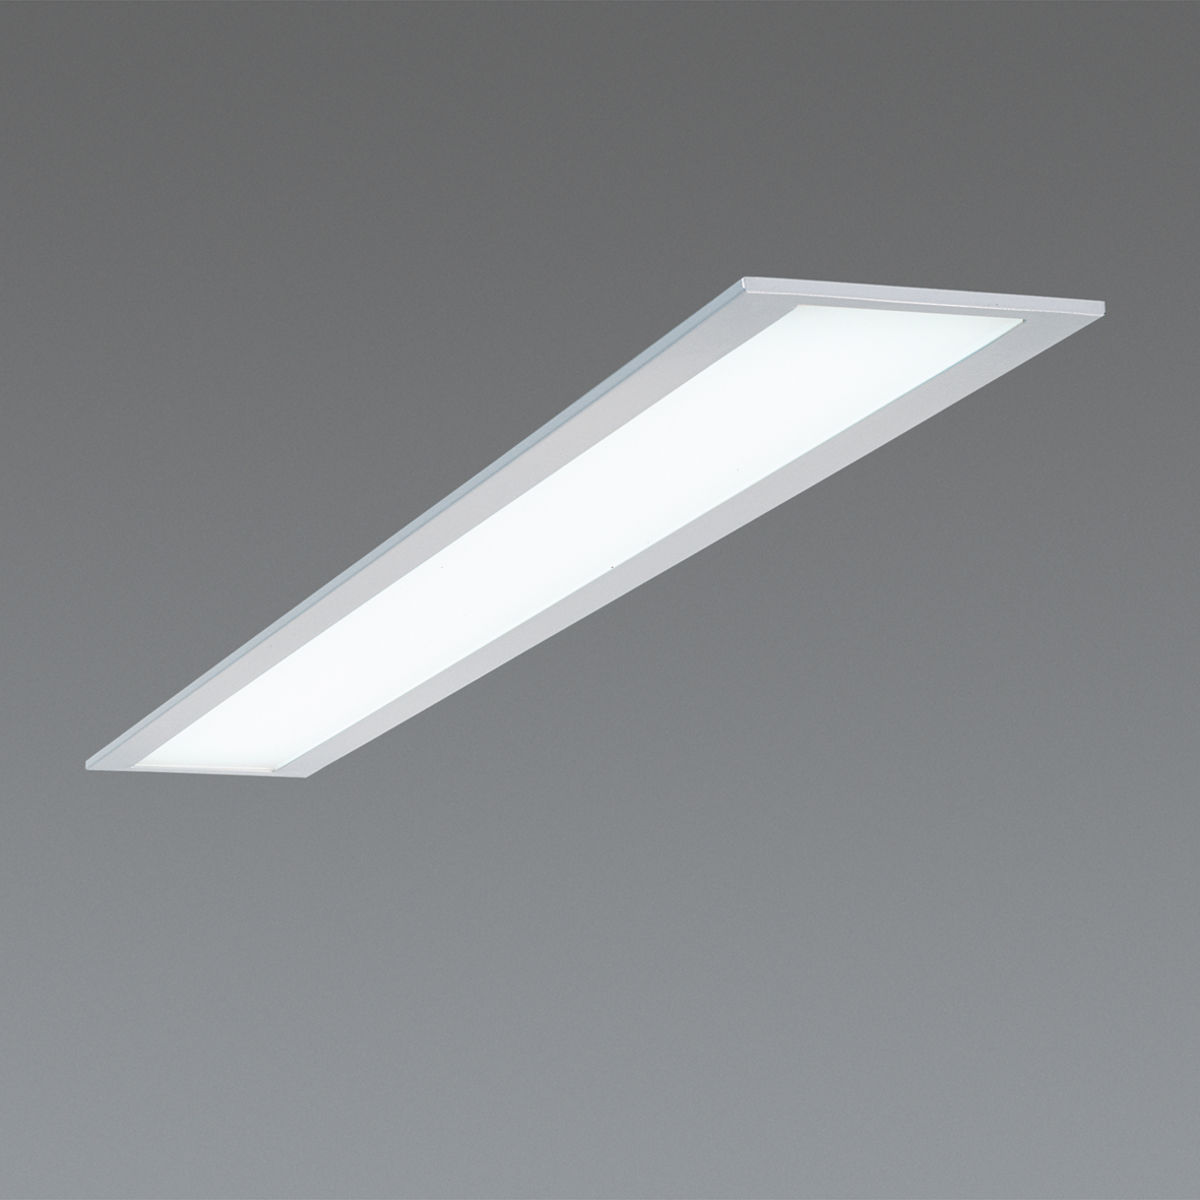 Surface-mounted light fixture / recessed ceiling / LED / linear ...